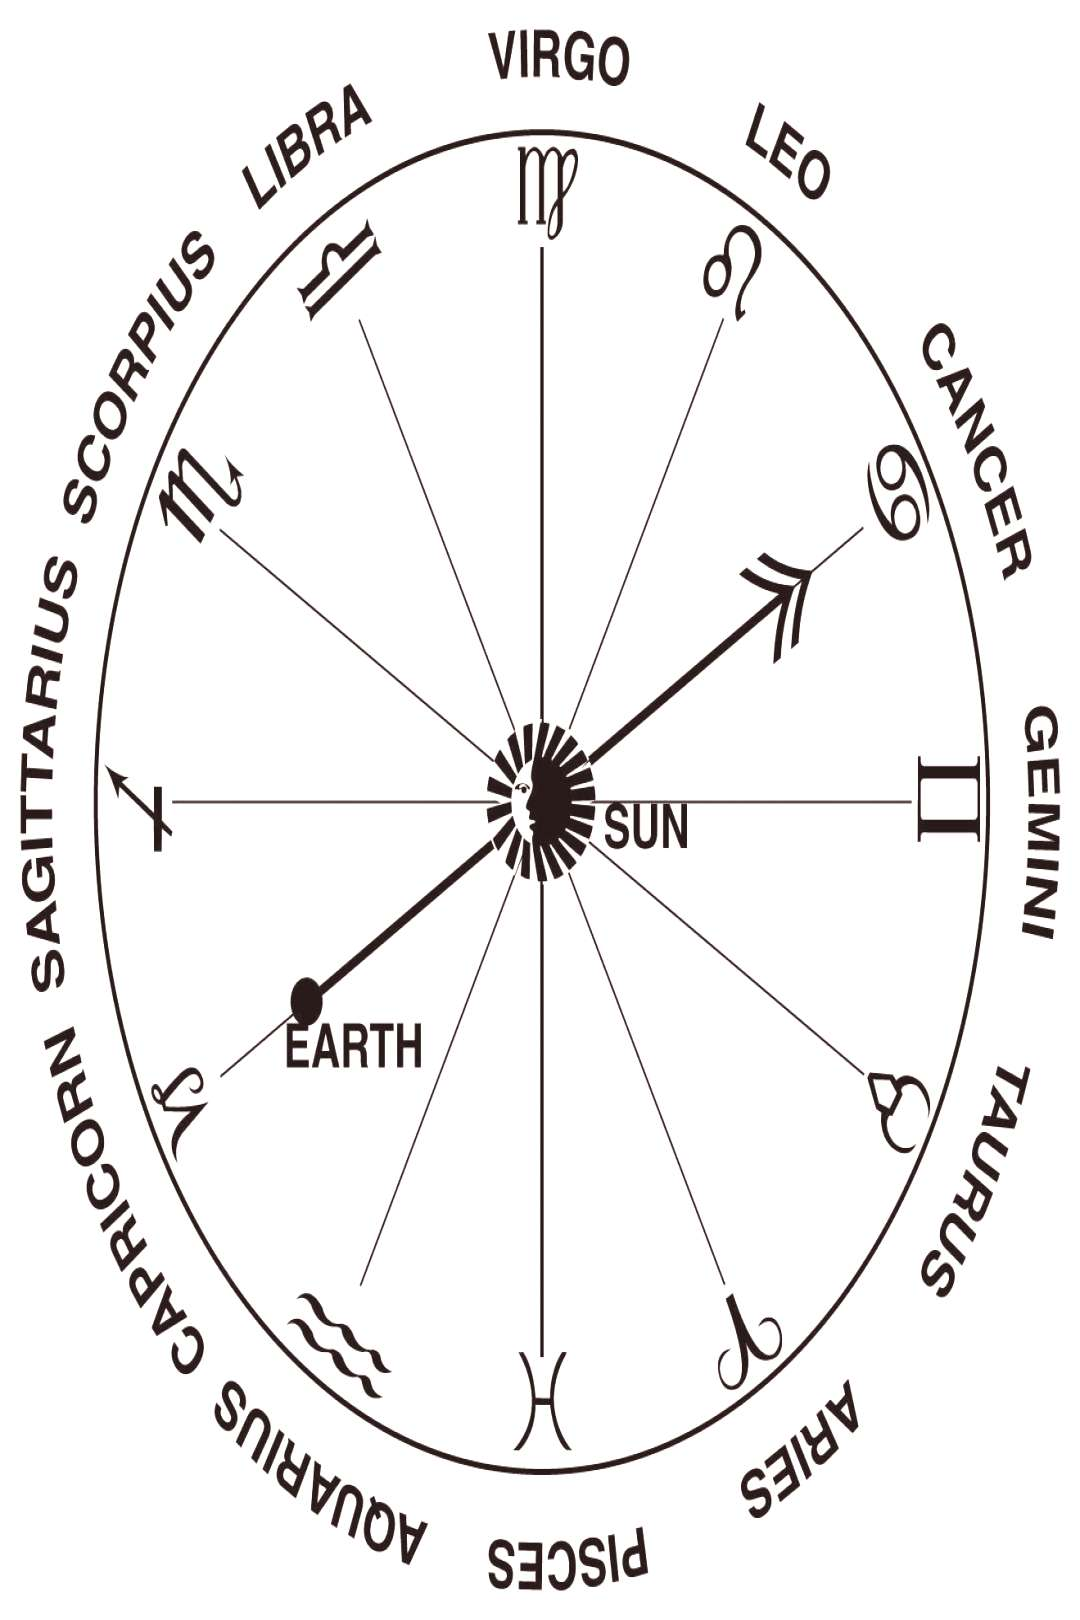 The zodiac represents the constellations through which the sun ... , The zodiac represents the con